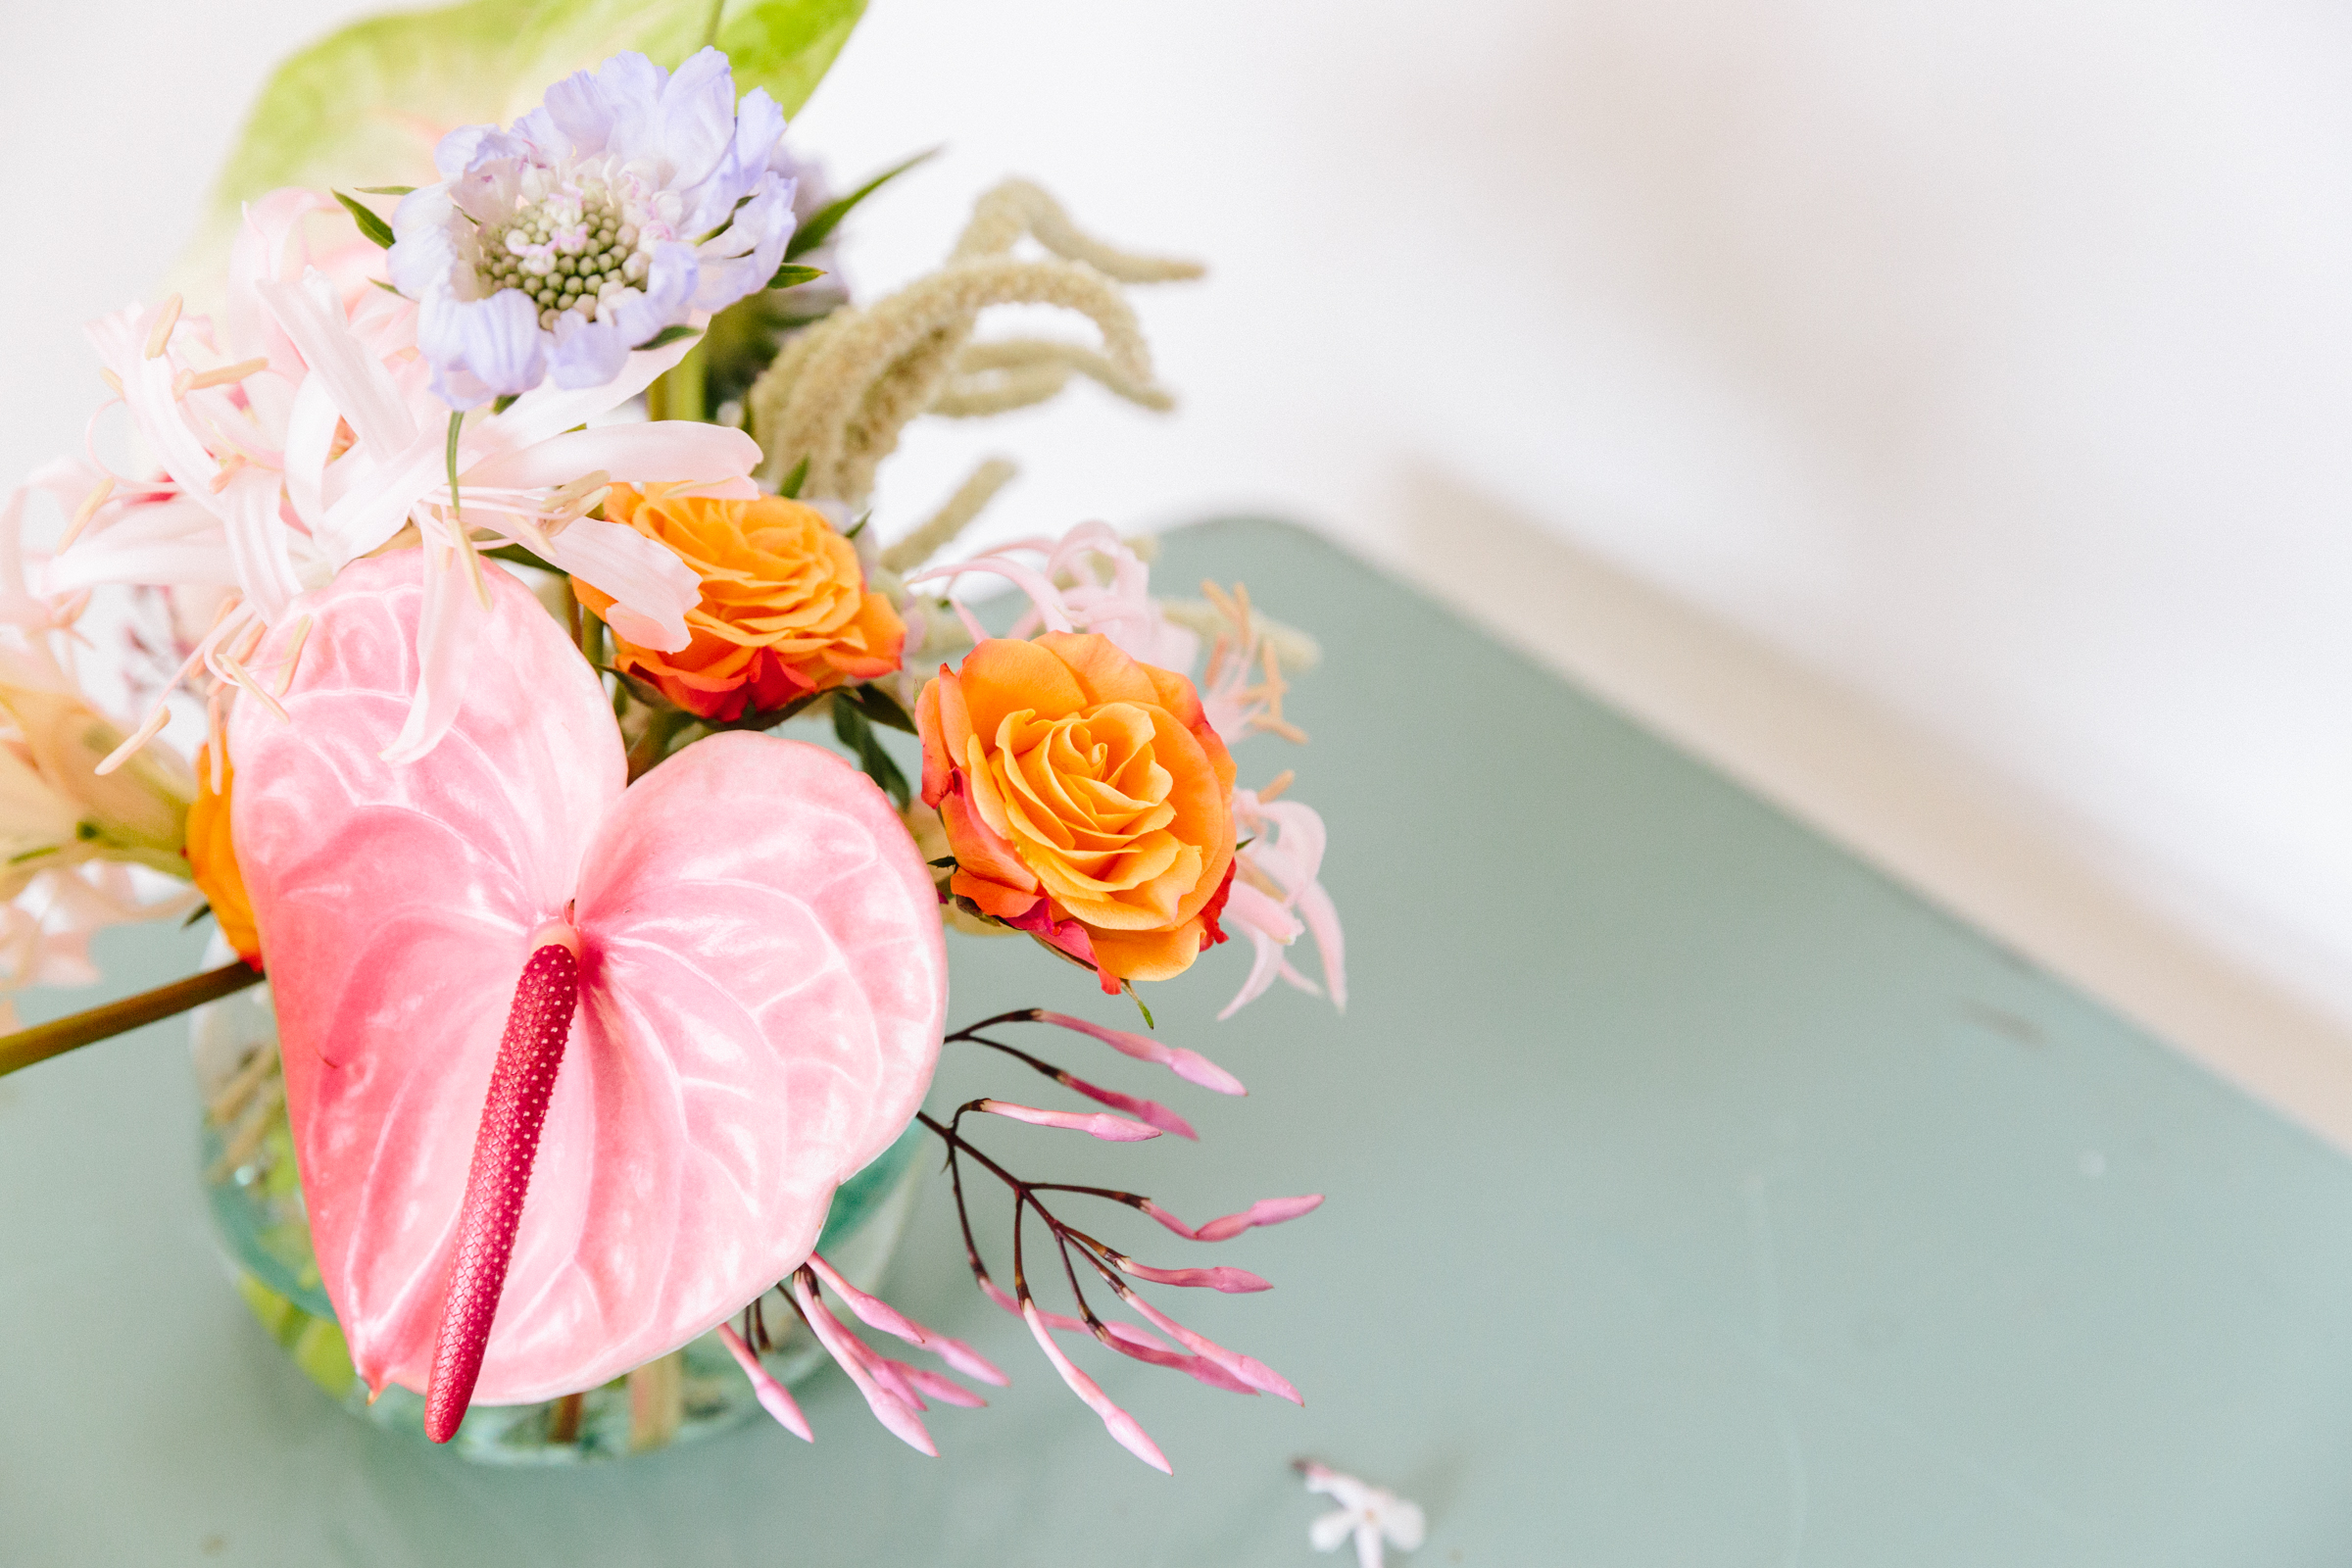 beside table detail mothers day.jpg